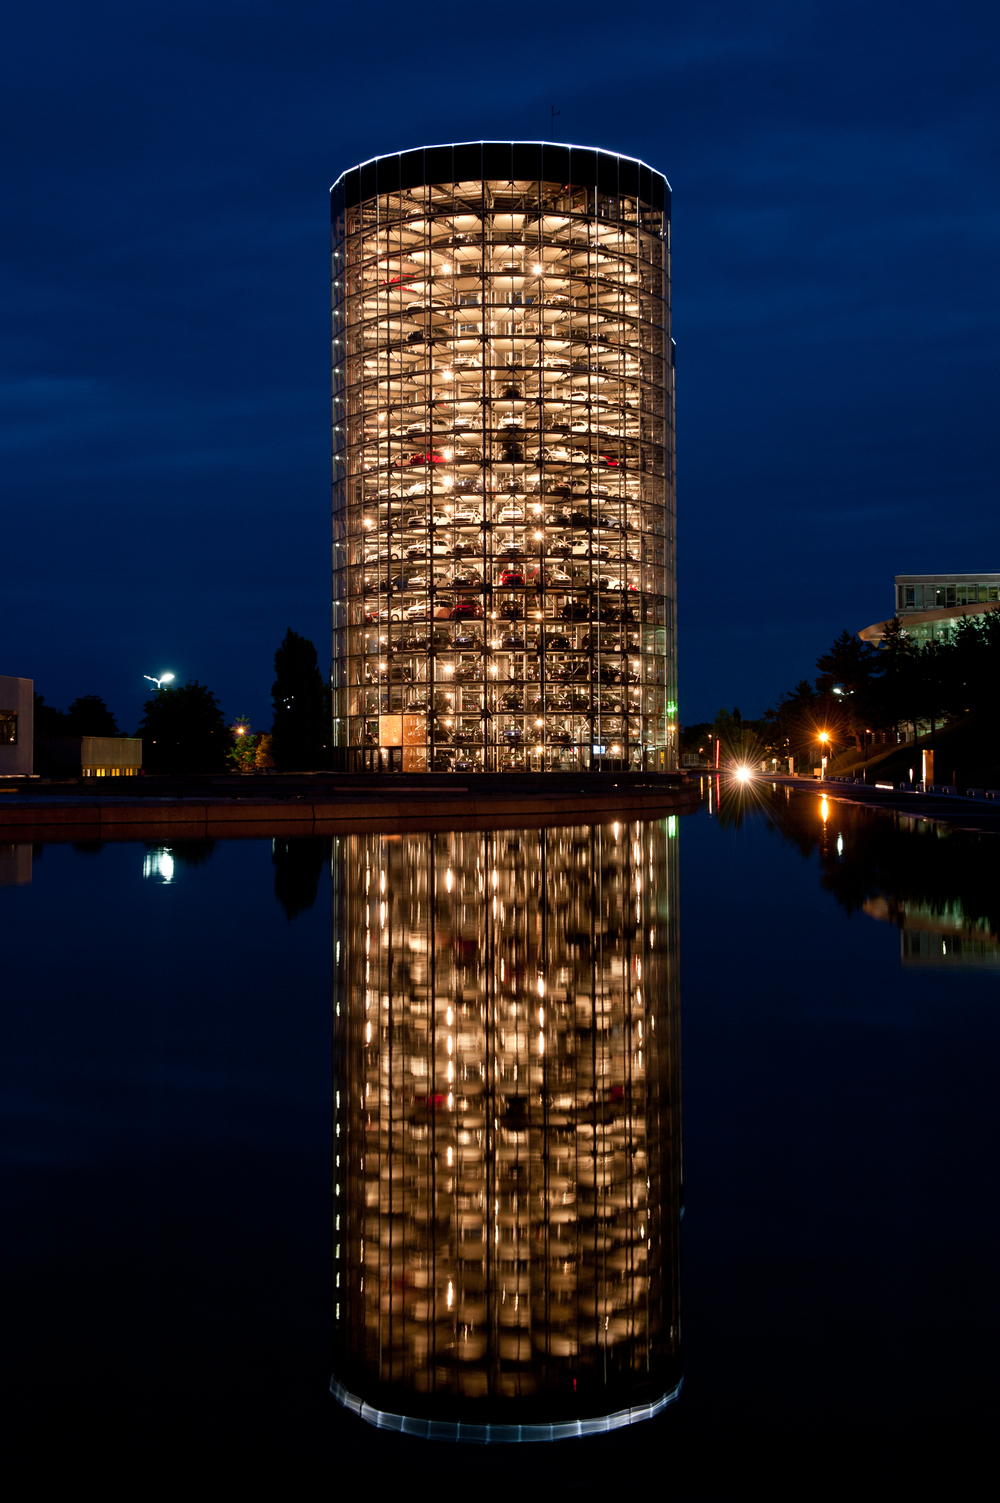 'Car Tower' - Autostadt, Germany